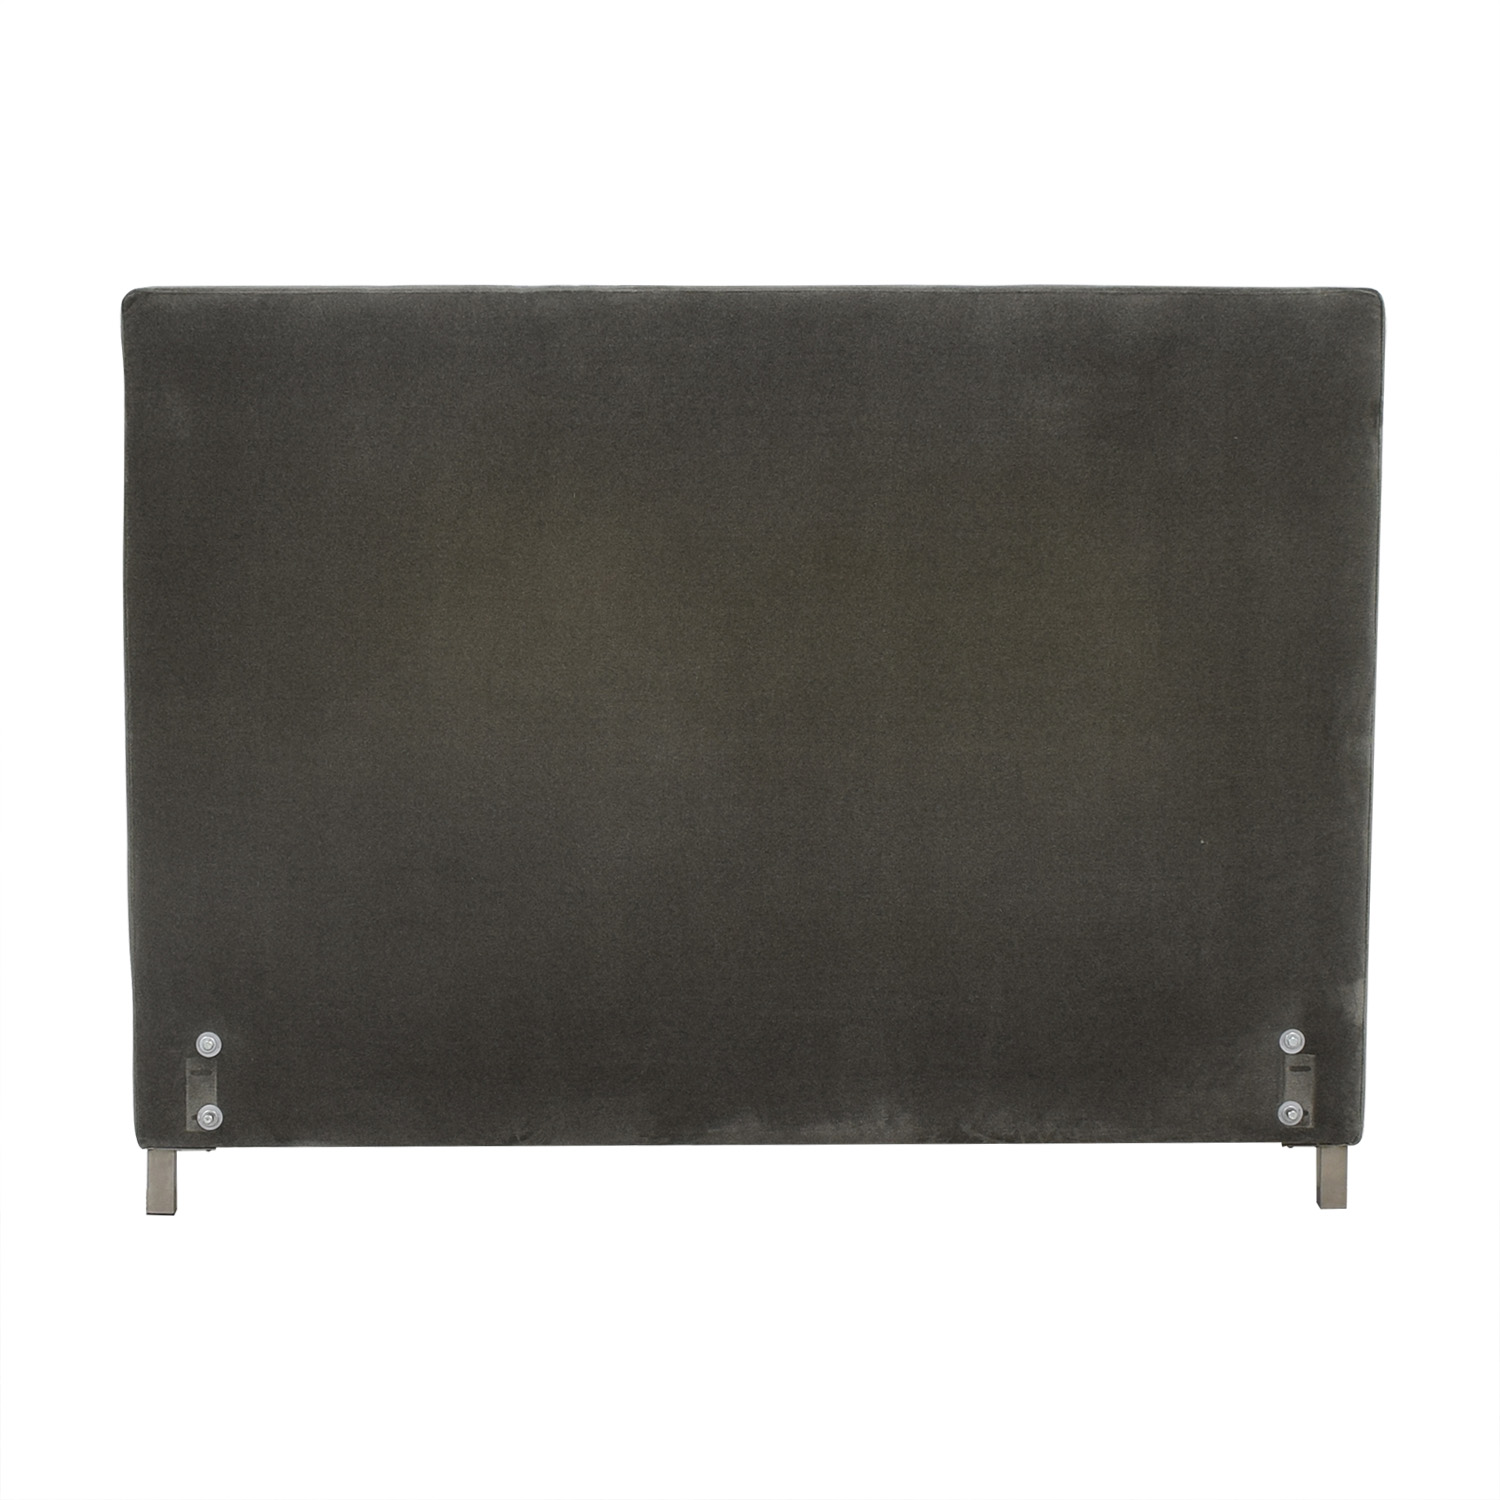 ABC Carpet & Home ABC Carpet & Home Upholstered Headboard coupon